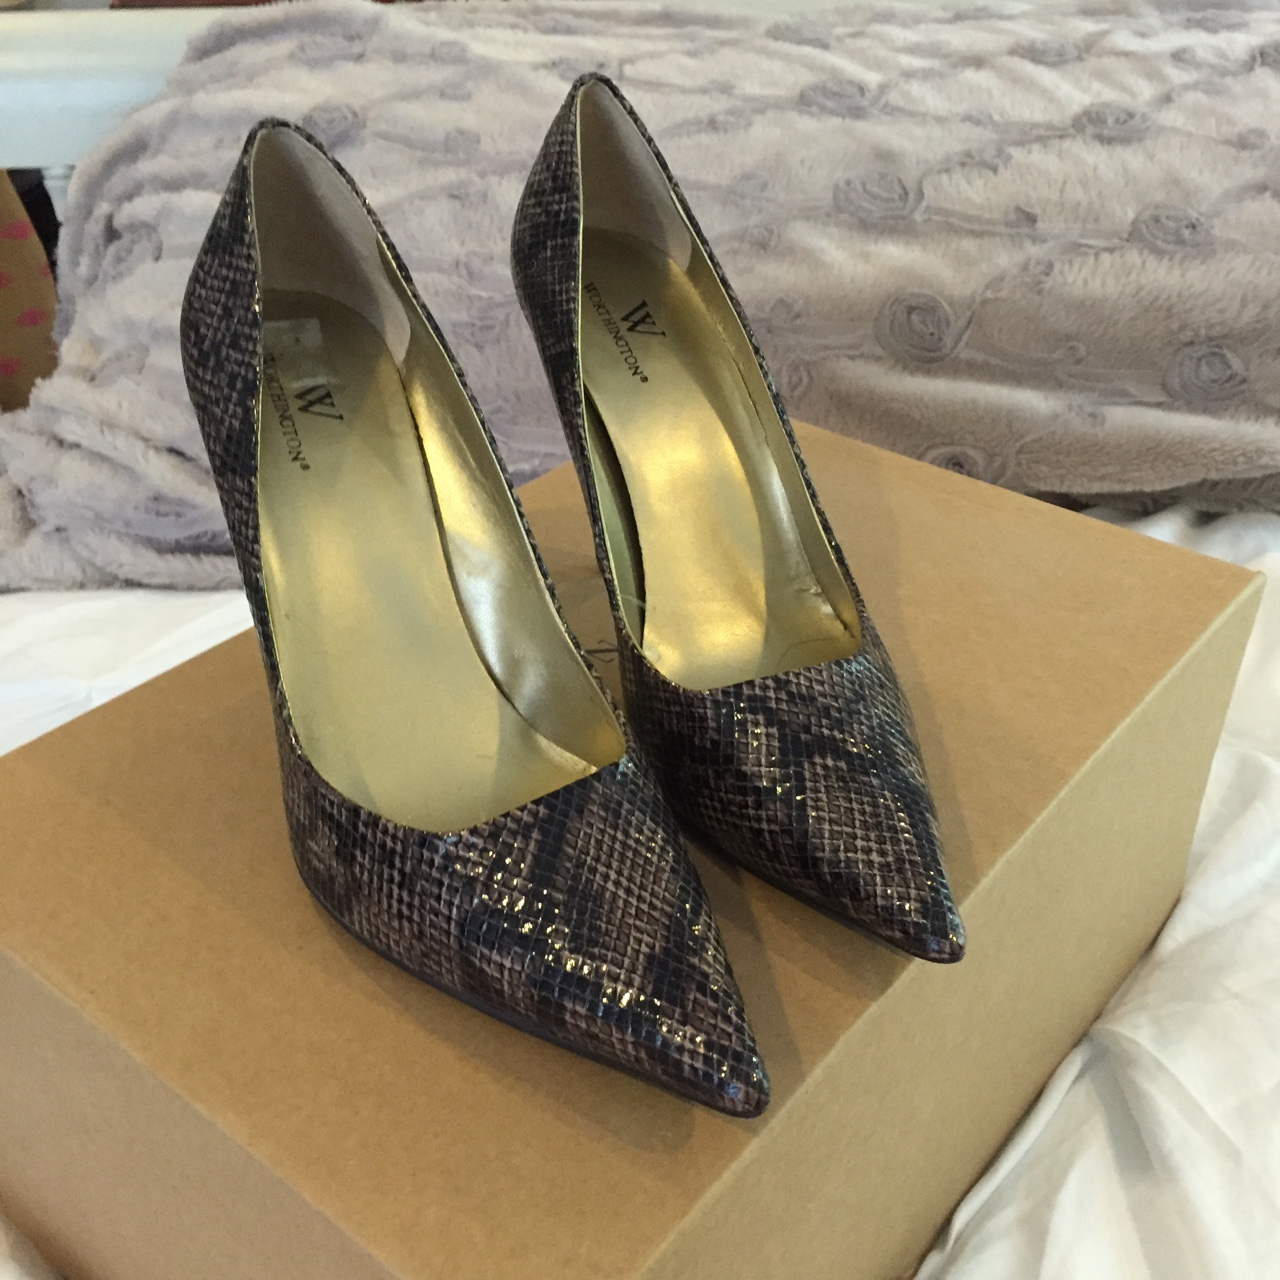 Worthington snake skin pointed toe heeled pumps     - Depop